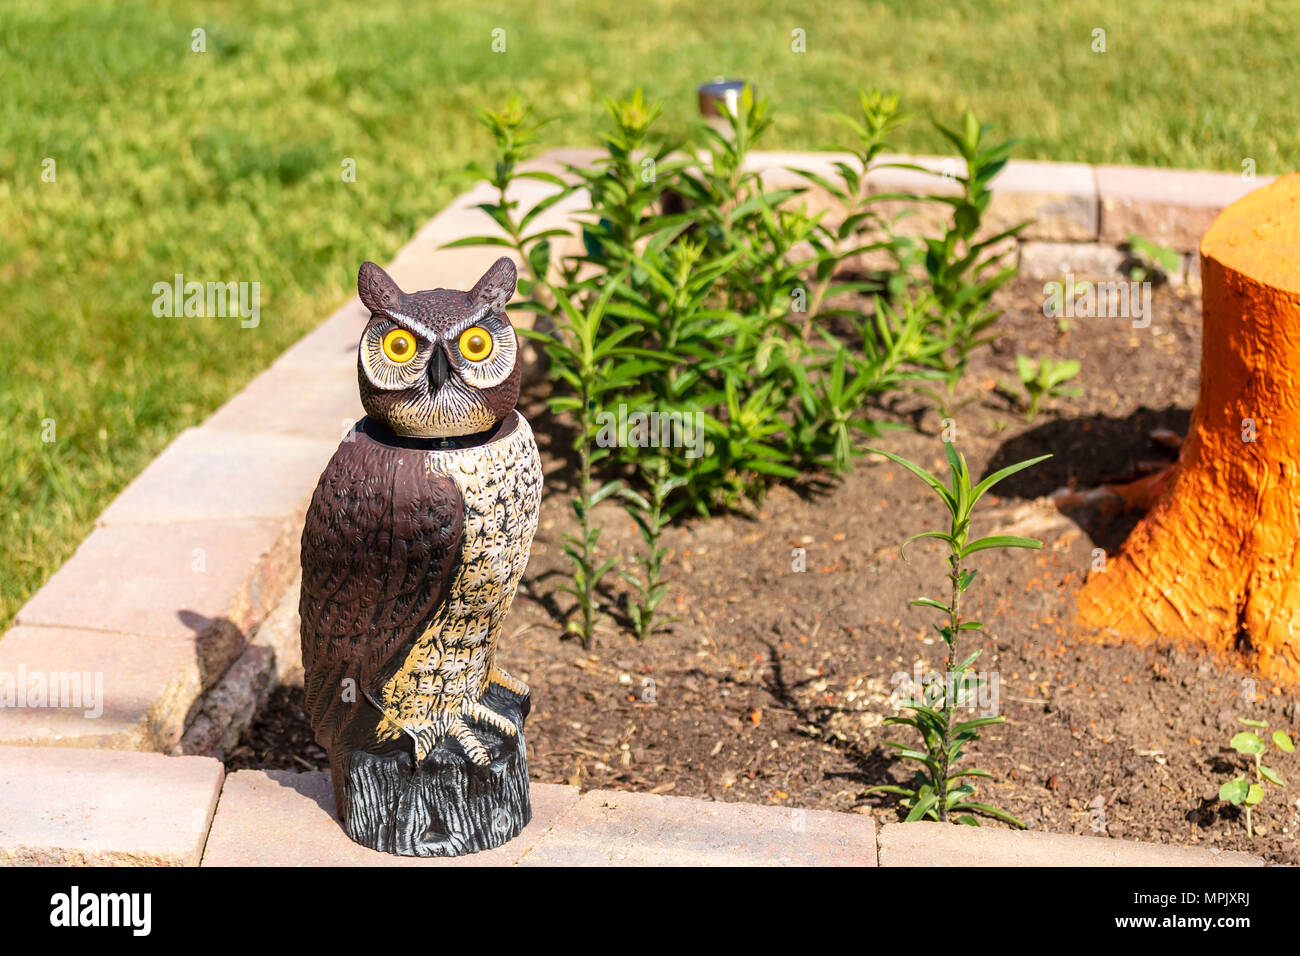 woodsy the decoy owl  protecting the garden plants Stock Photo